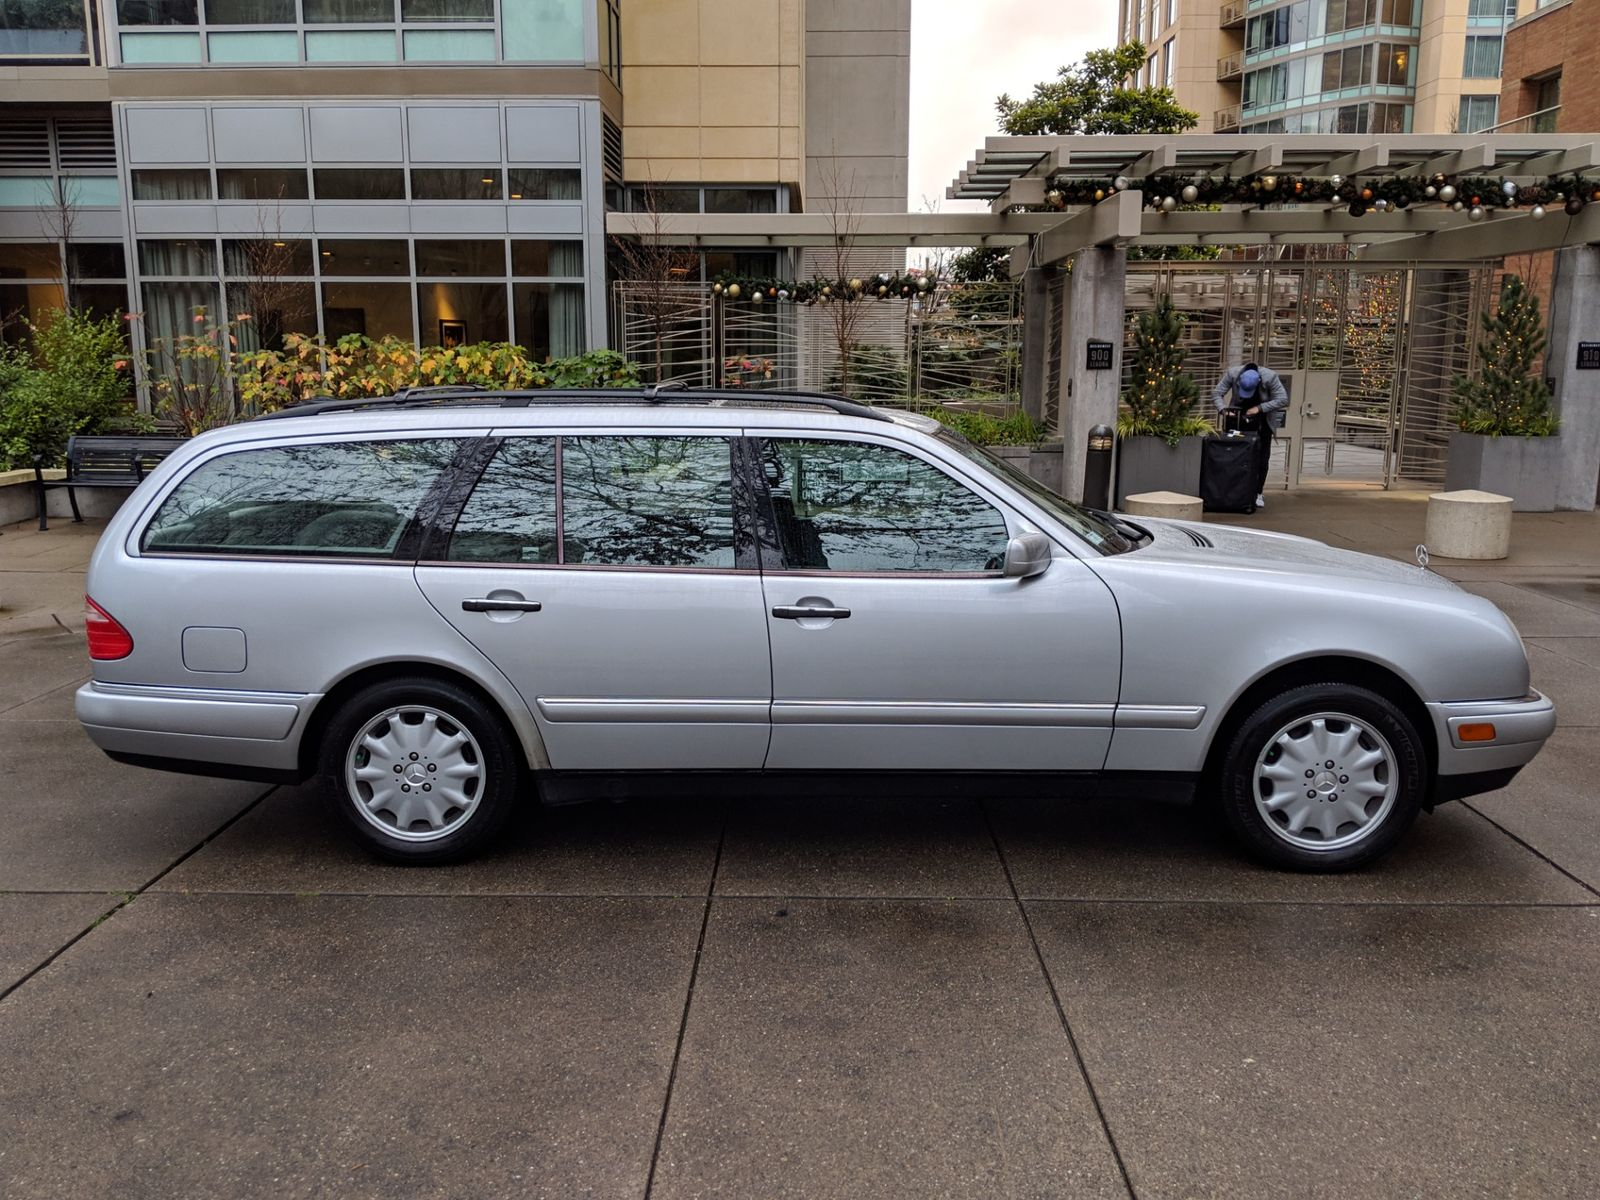 1999 Mercedes Benz E320 4Matic Wagon 7 Passenger All Wheel Drive Local 2 Owner History